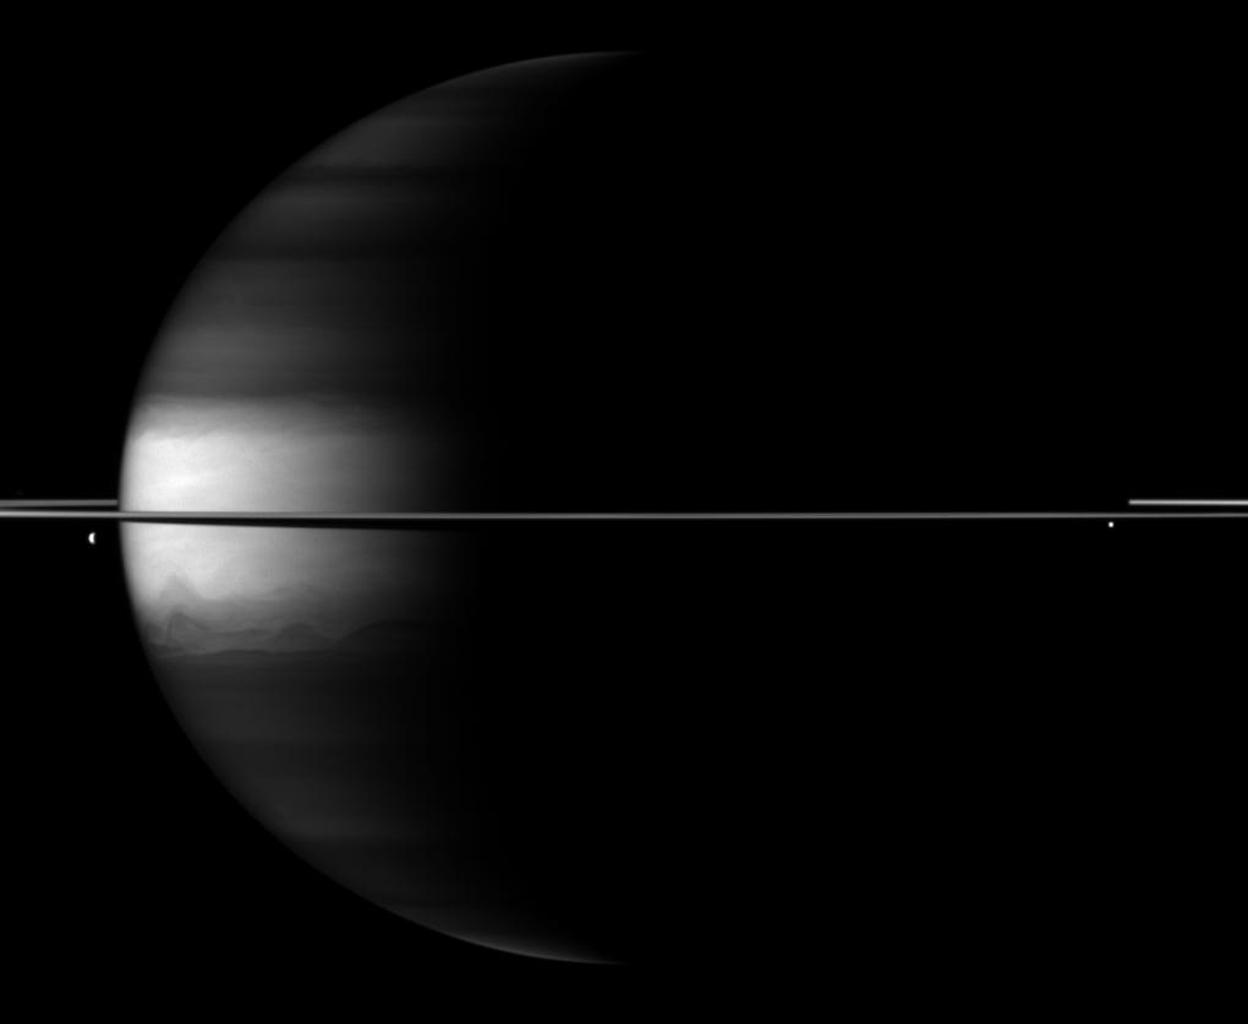 Dramatic differences between dark and light embellish image of Saturn, its rings and its moons Dione and Enceladus in this image taken by NASA's Cassini spacecraft.